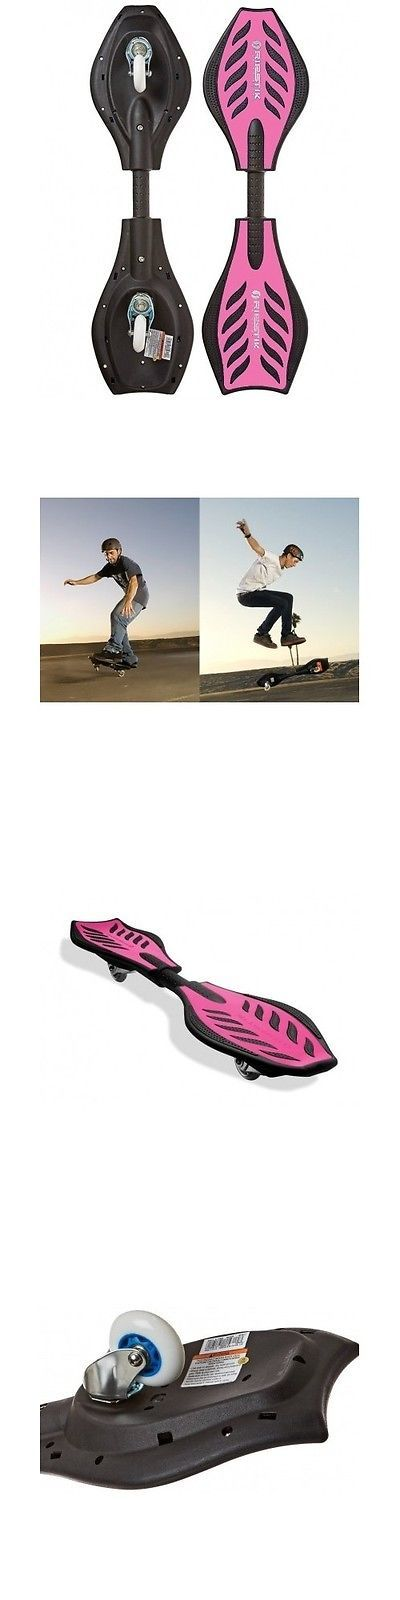 Other Skate- and Longboarding 16265: Caster Board Skateboard Wave Roller Razor Street Surfing Ripstik Snowboard Pink -> BUY IT NOW ONLY: $69.99 on eBay!